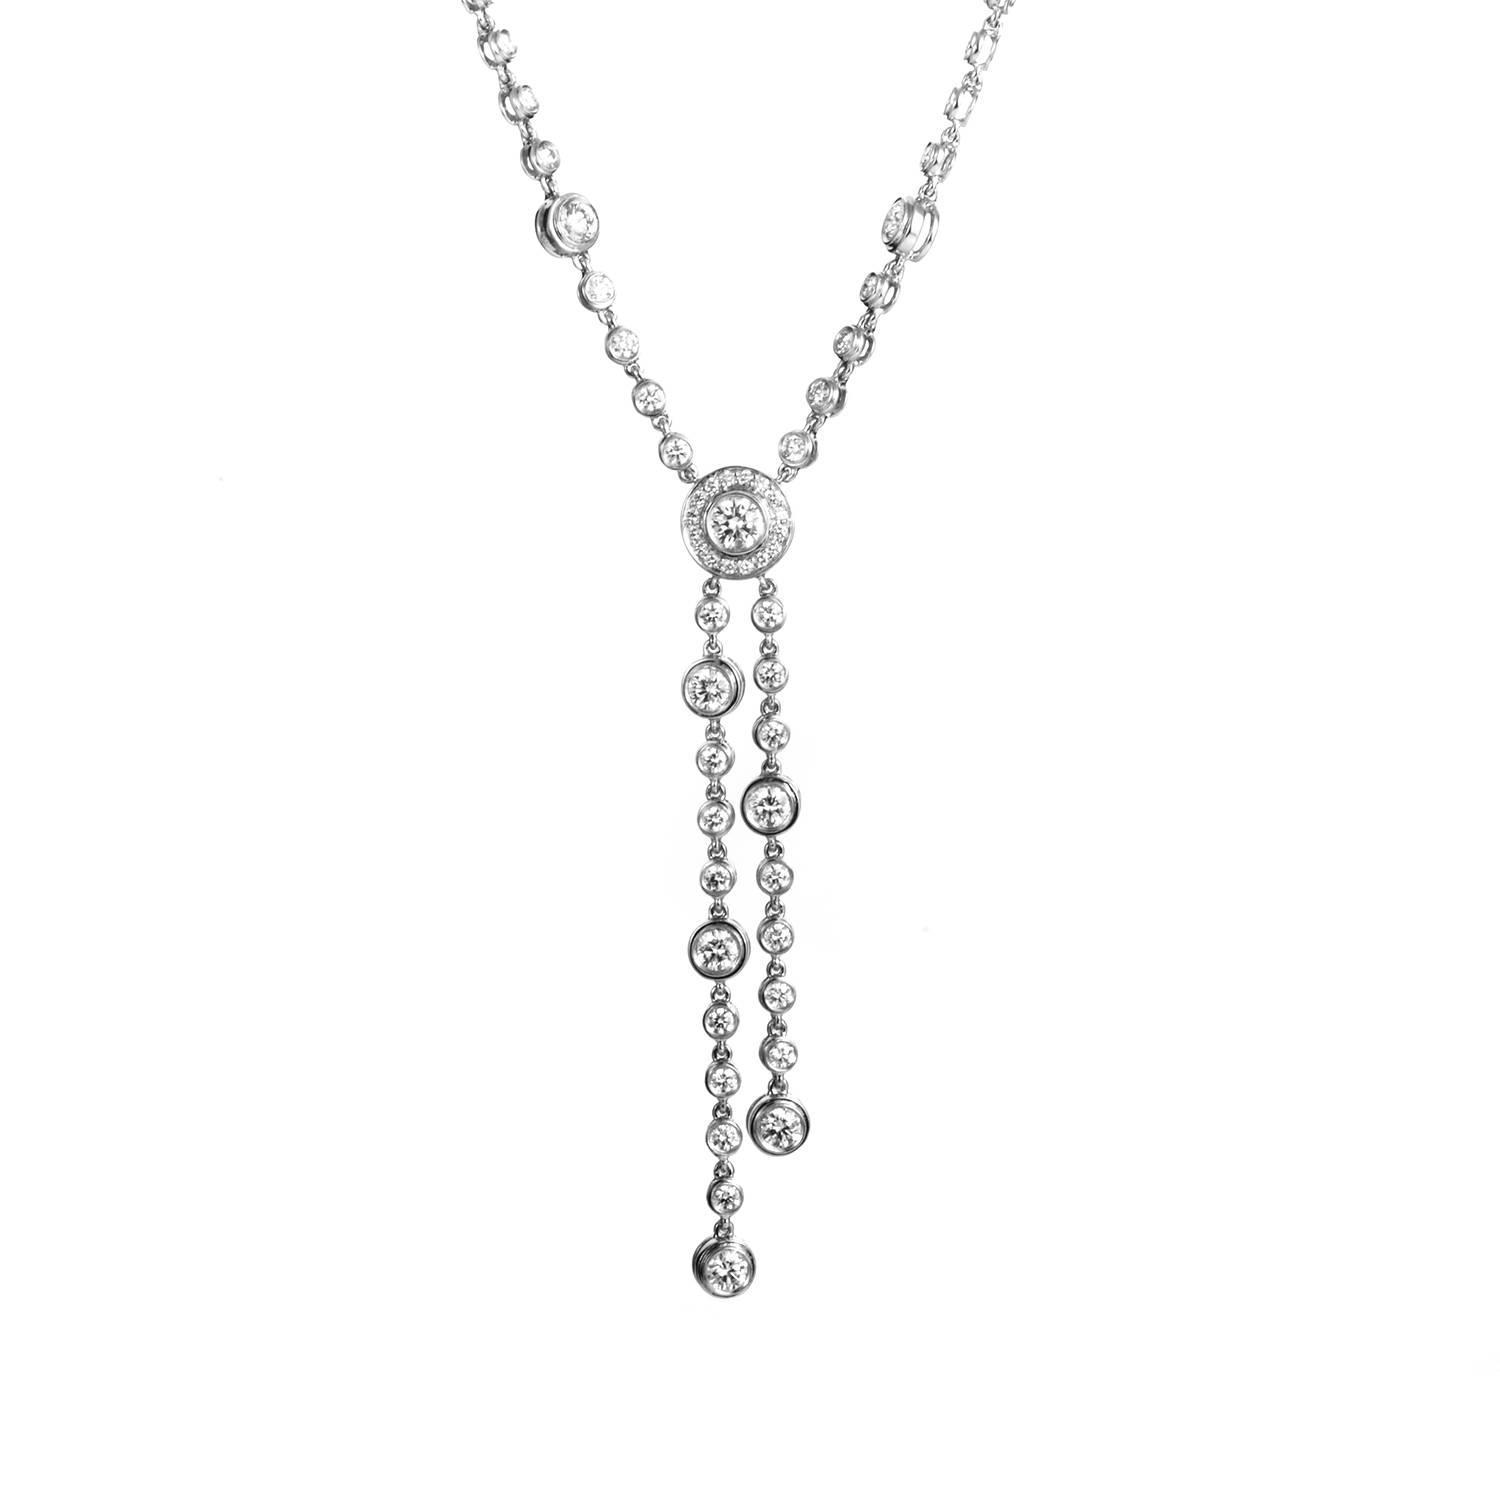 2953a11e11fbb Tiffany & Co. Circlet Platinum and Diamond Double Drop Necklace